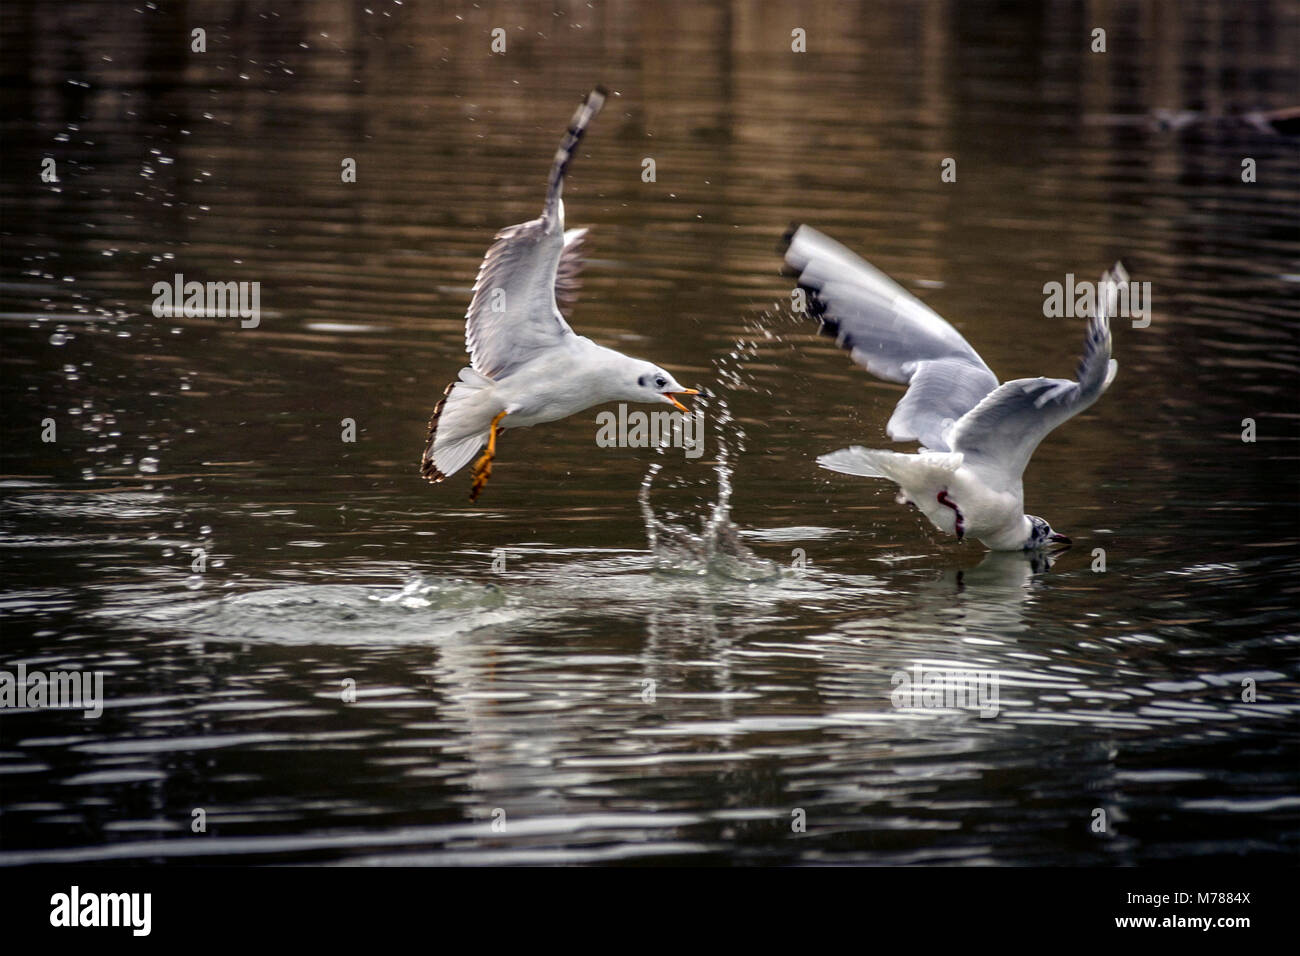 Melton Mowbray. 9th March 2018: UK Weather: Grey clouds and showers, mild day as visitors watch young swans in flight - Stock Image